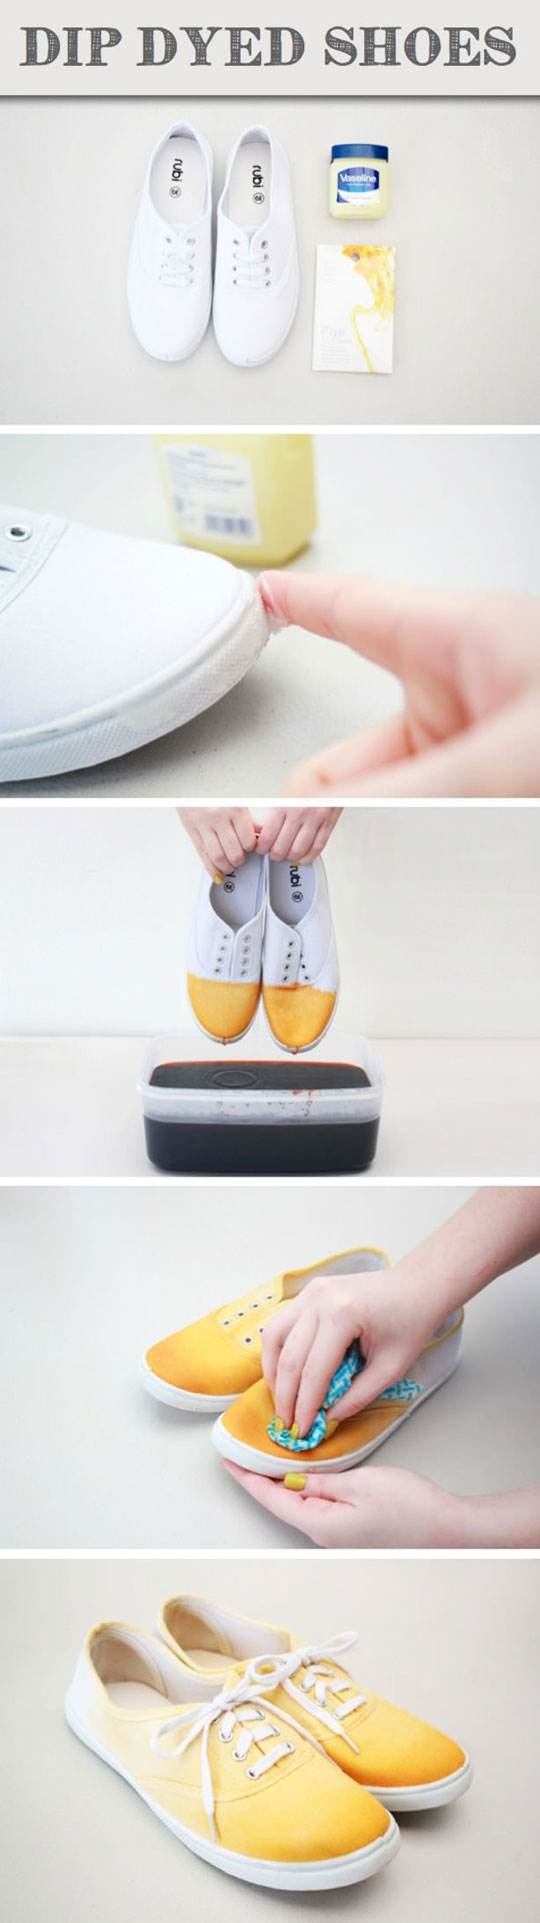 Something Cool You Can Do With Your Shoes